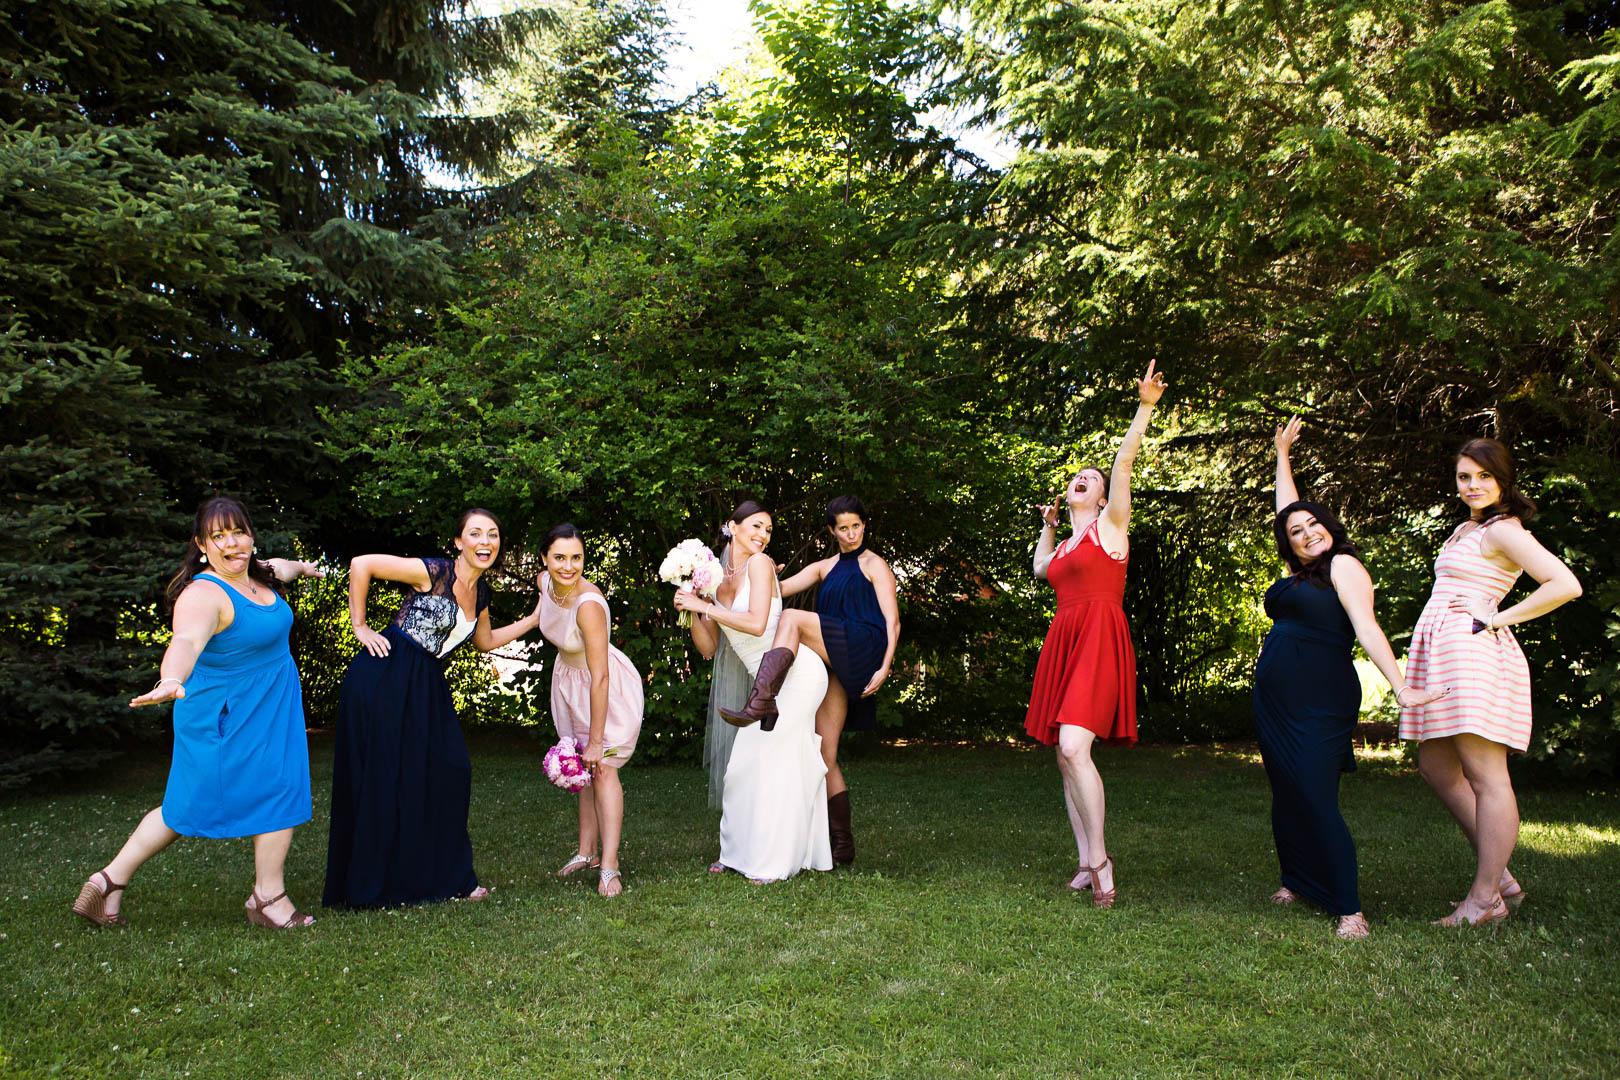 Atelier Pictures, Group Photos, Hood River, International Photographer, Mt. Hood Organic Farm, Oregon, Photography, Portland, Wedding, Wedding Photography